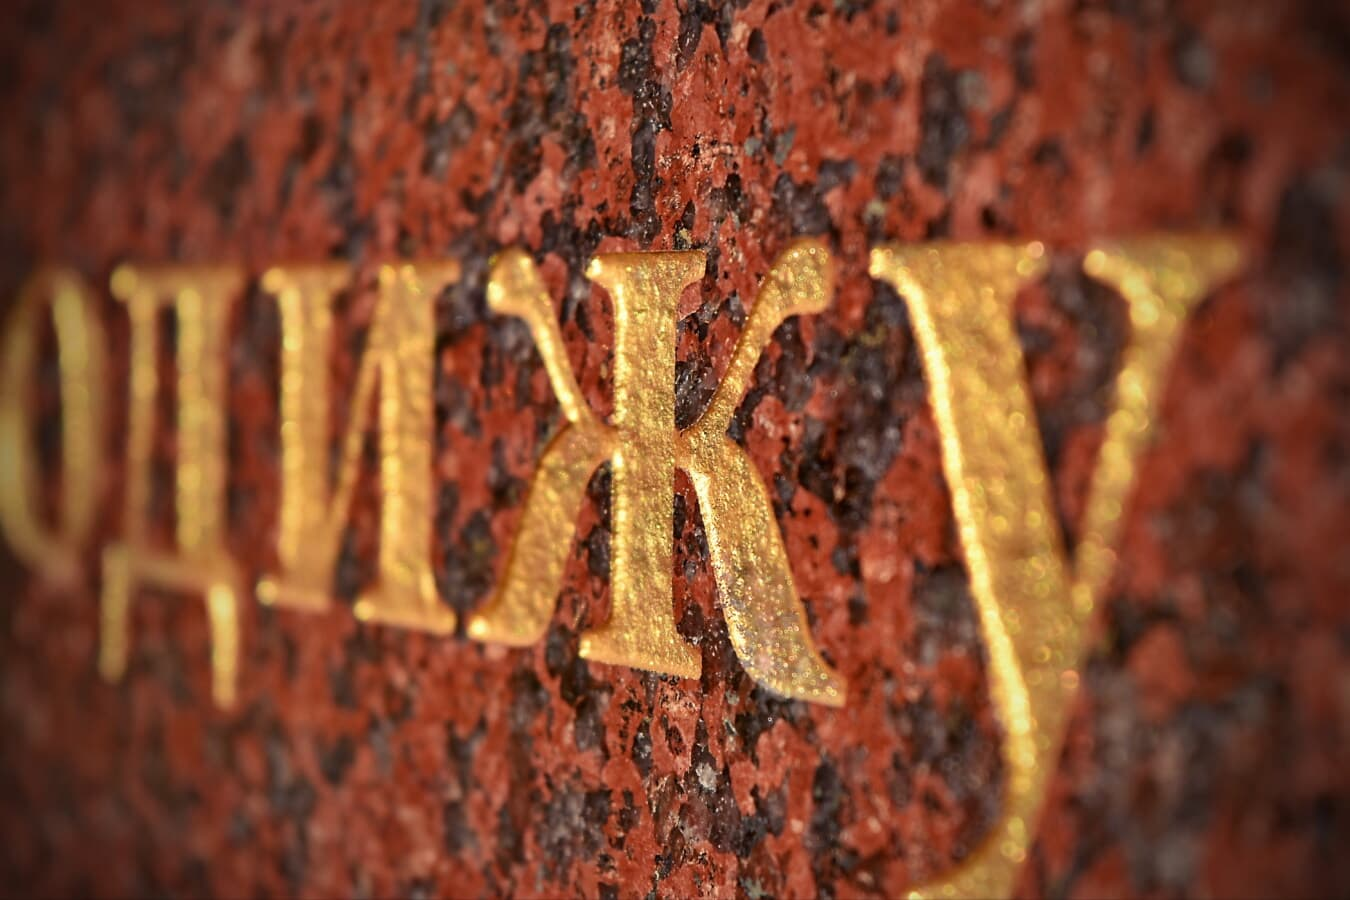 russian, ukraine, text, cyrillic, alphabet, close-up, detail, literacy, old, texture, decay